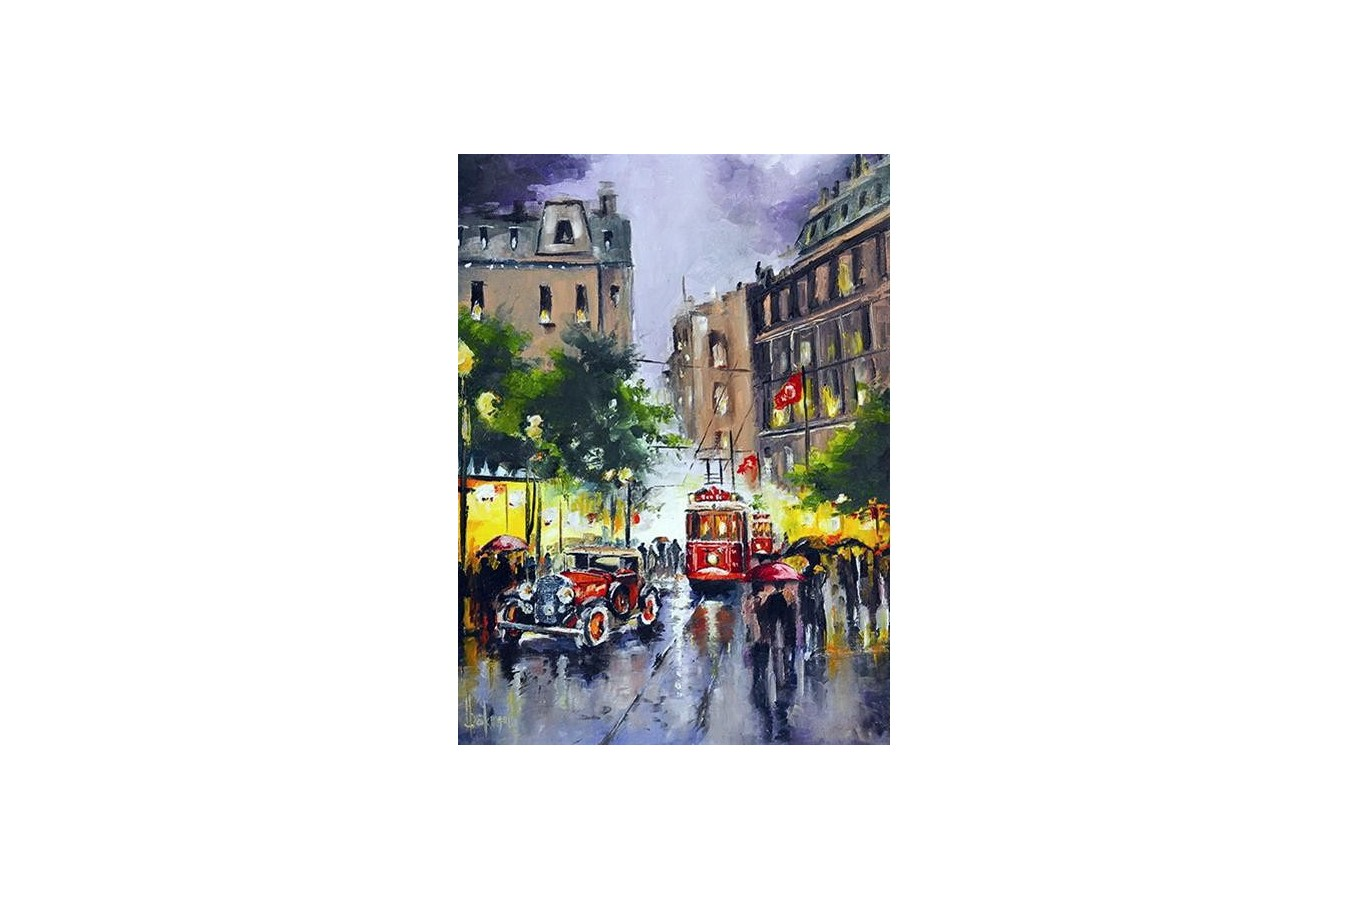 Puzzle Anatolian - Istiklal Street, Istanbul, 1000 piese (3189)